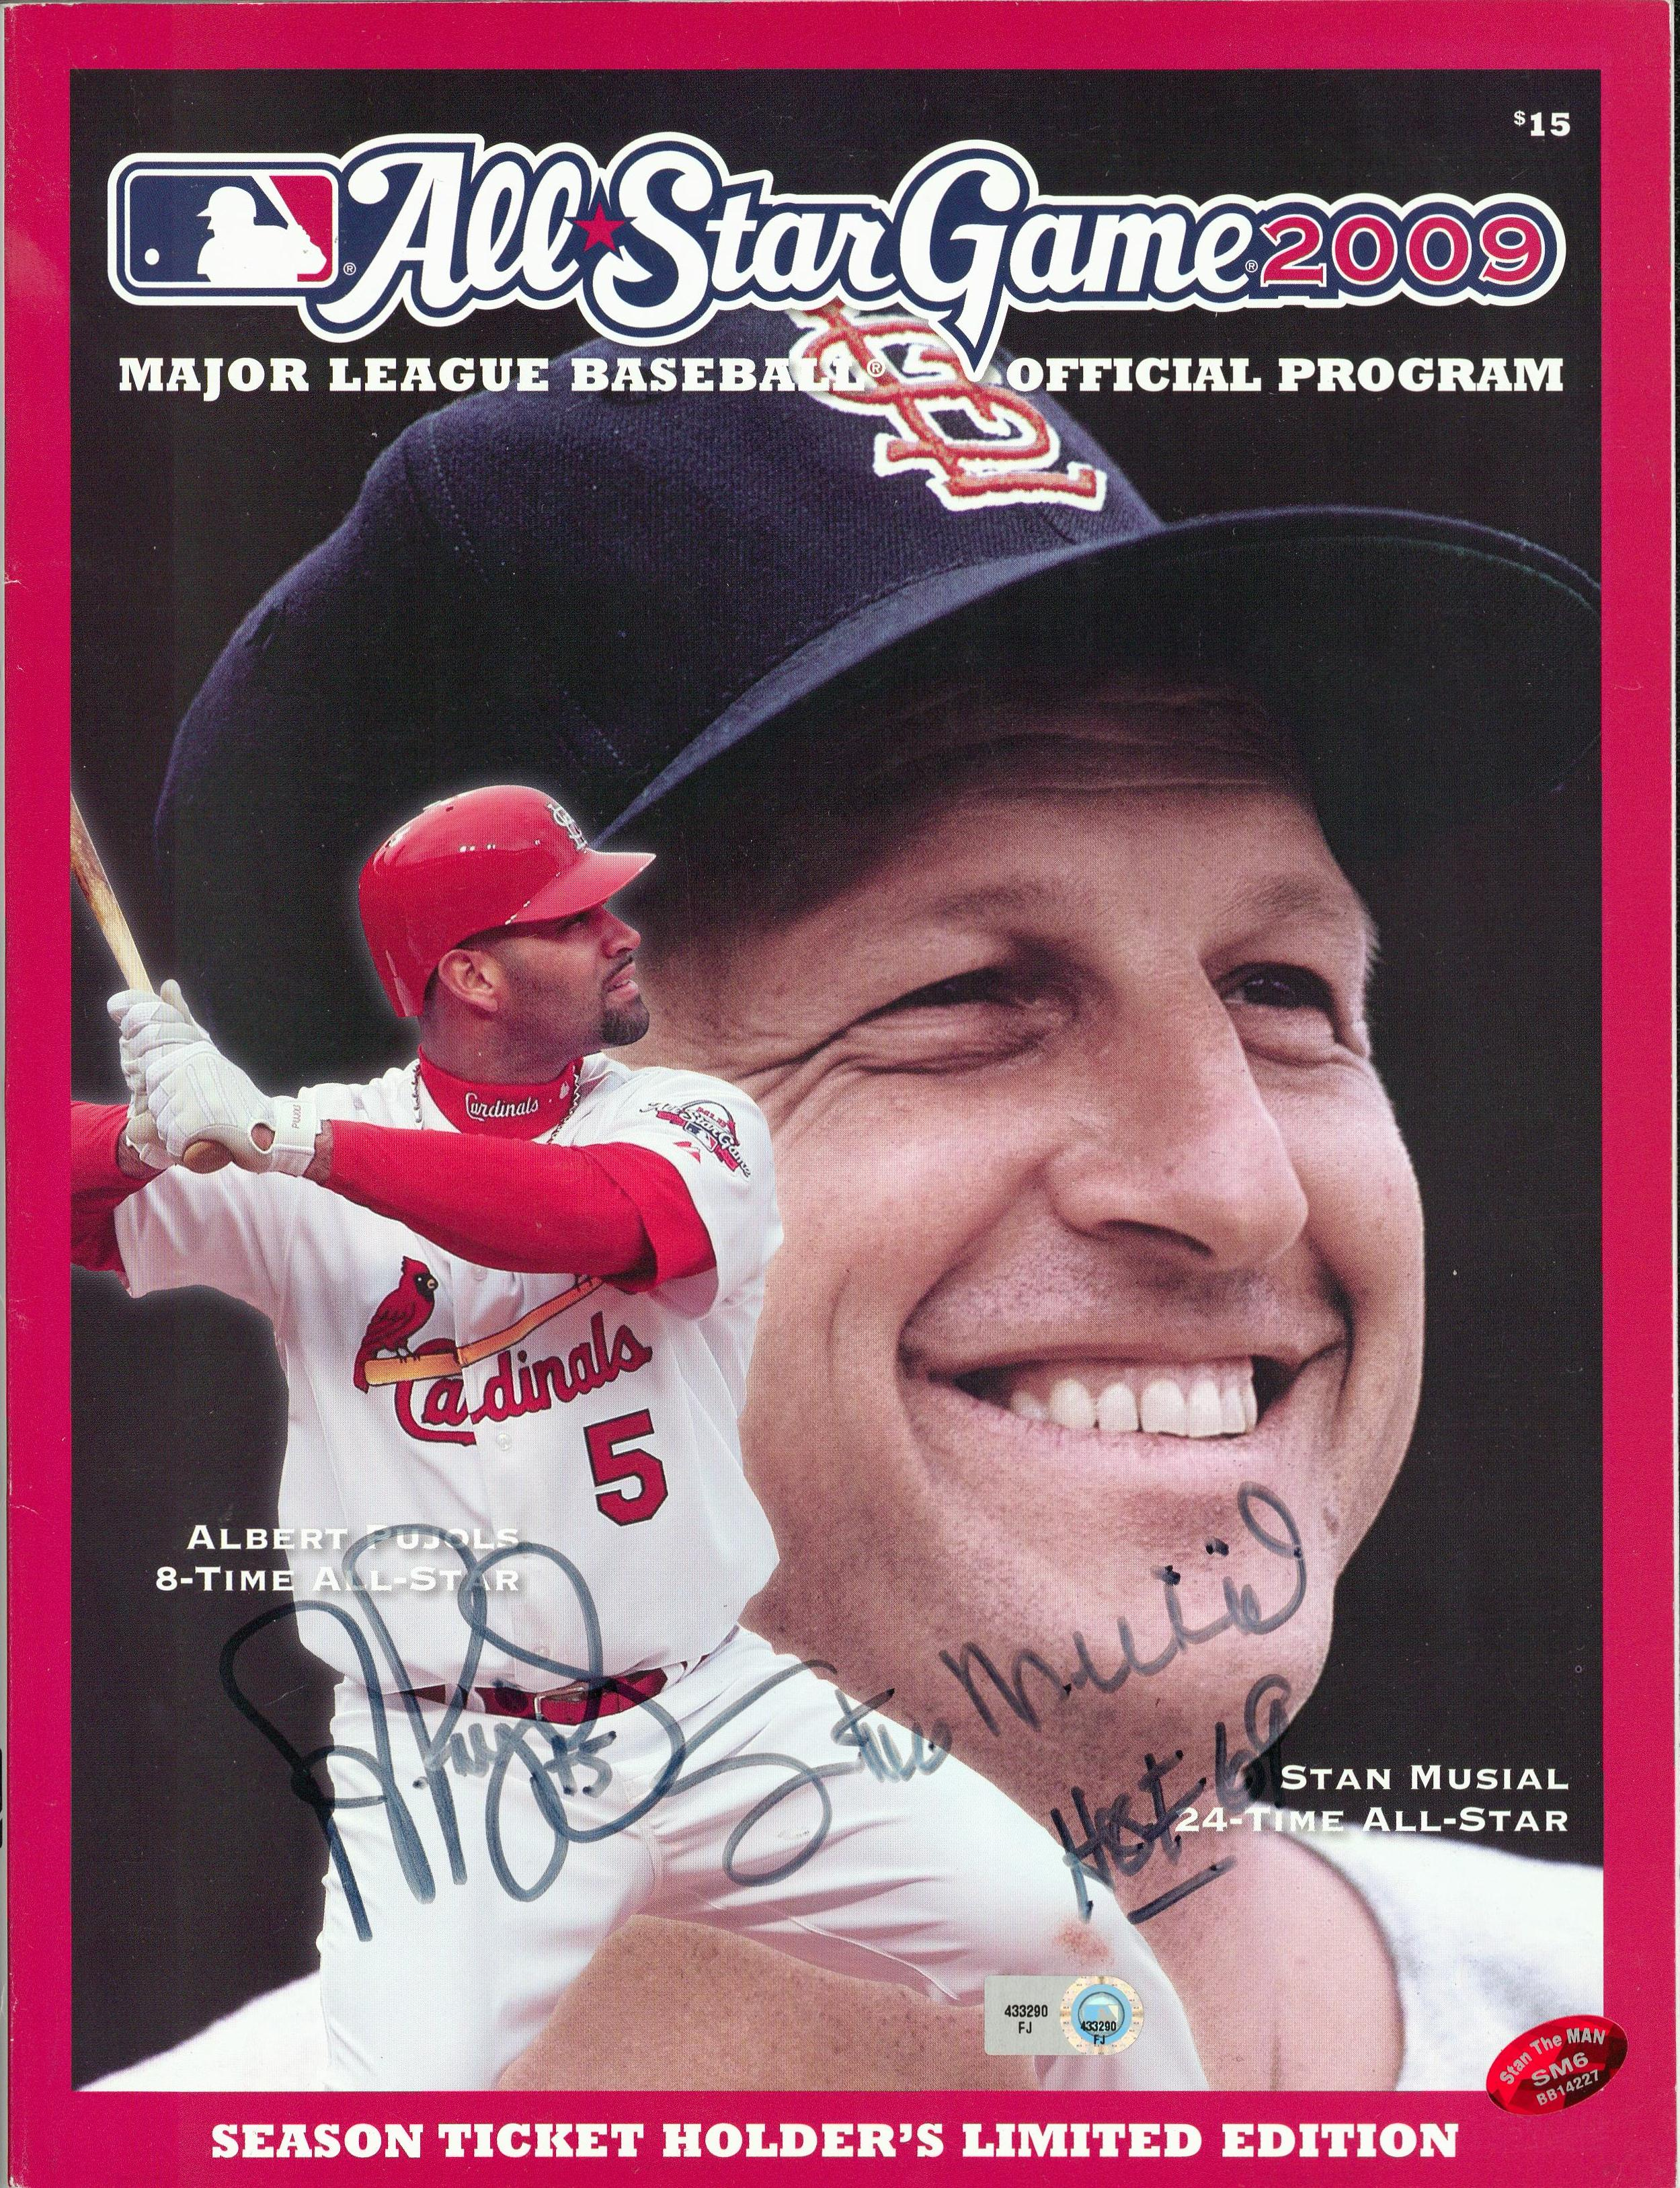 Stan musial and albert pujols essay